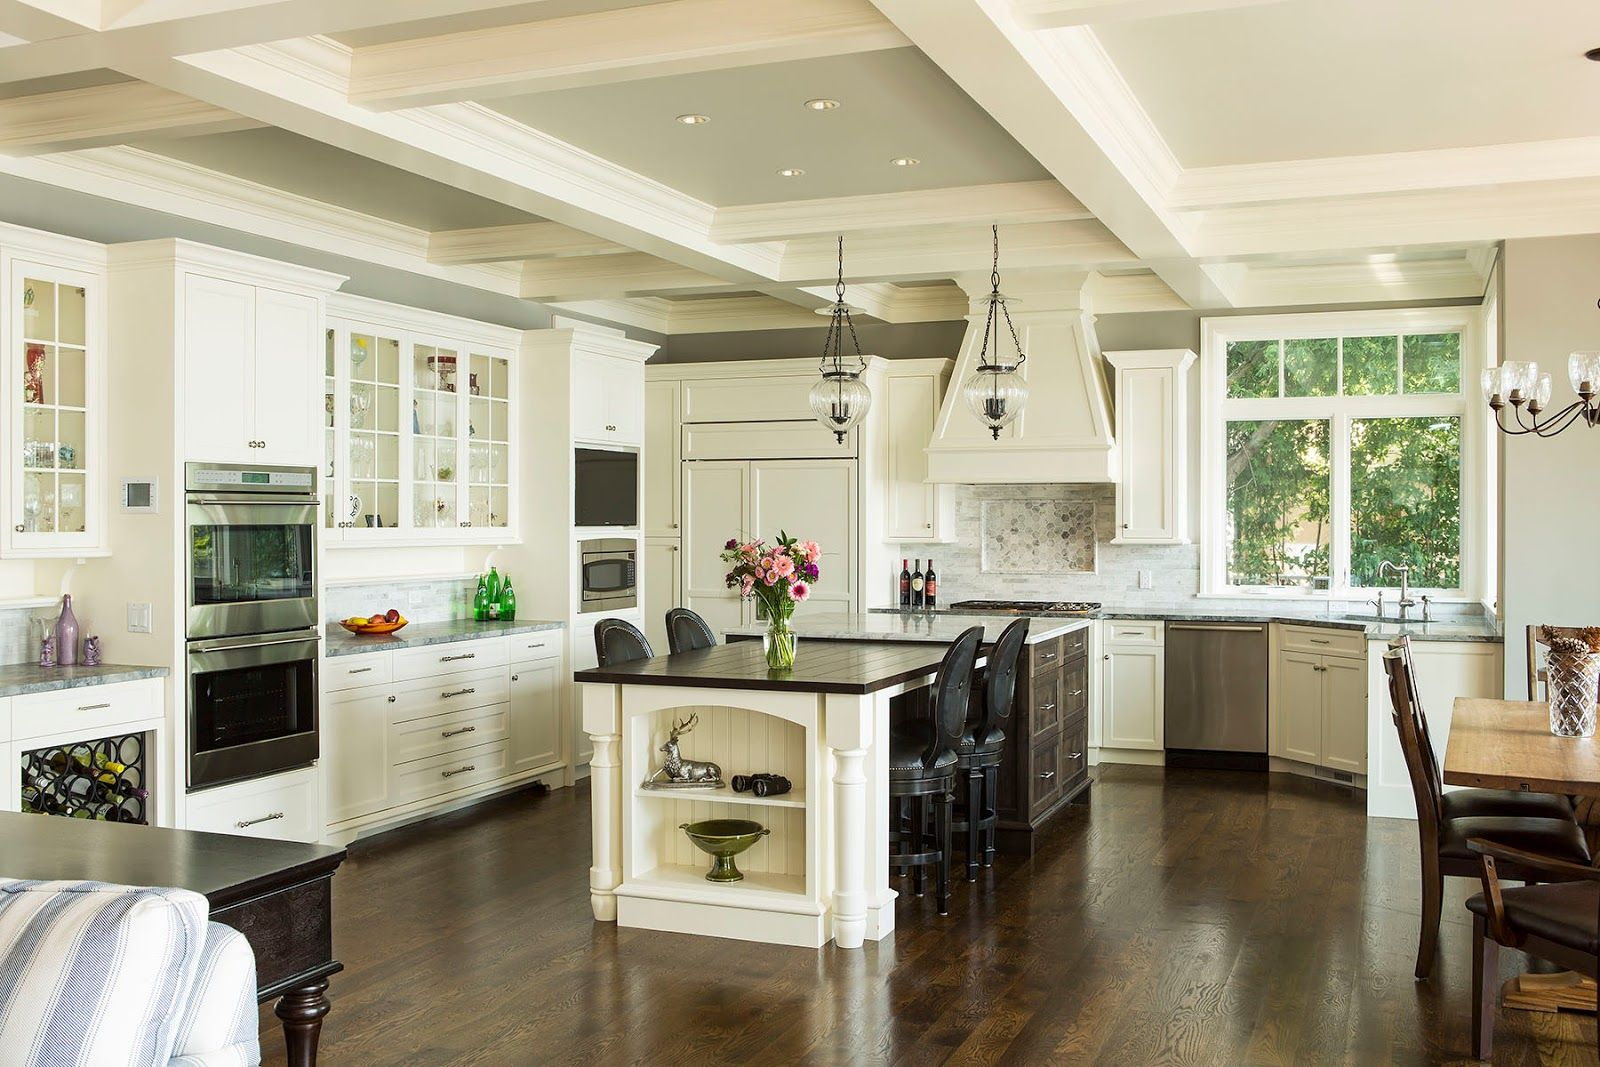 Kitchen designs beautiful large open space kitchen with for Kitchen design and layout ideas